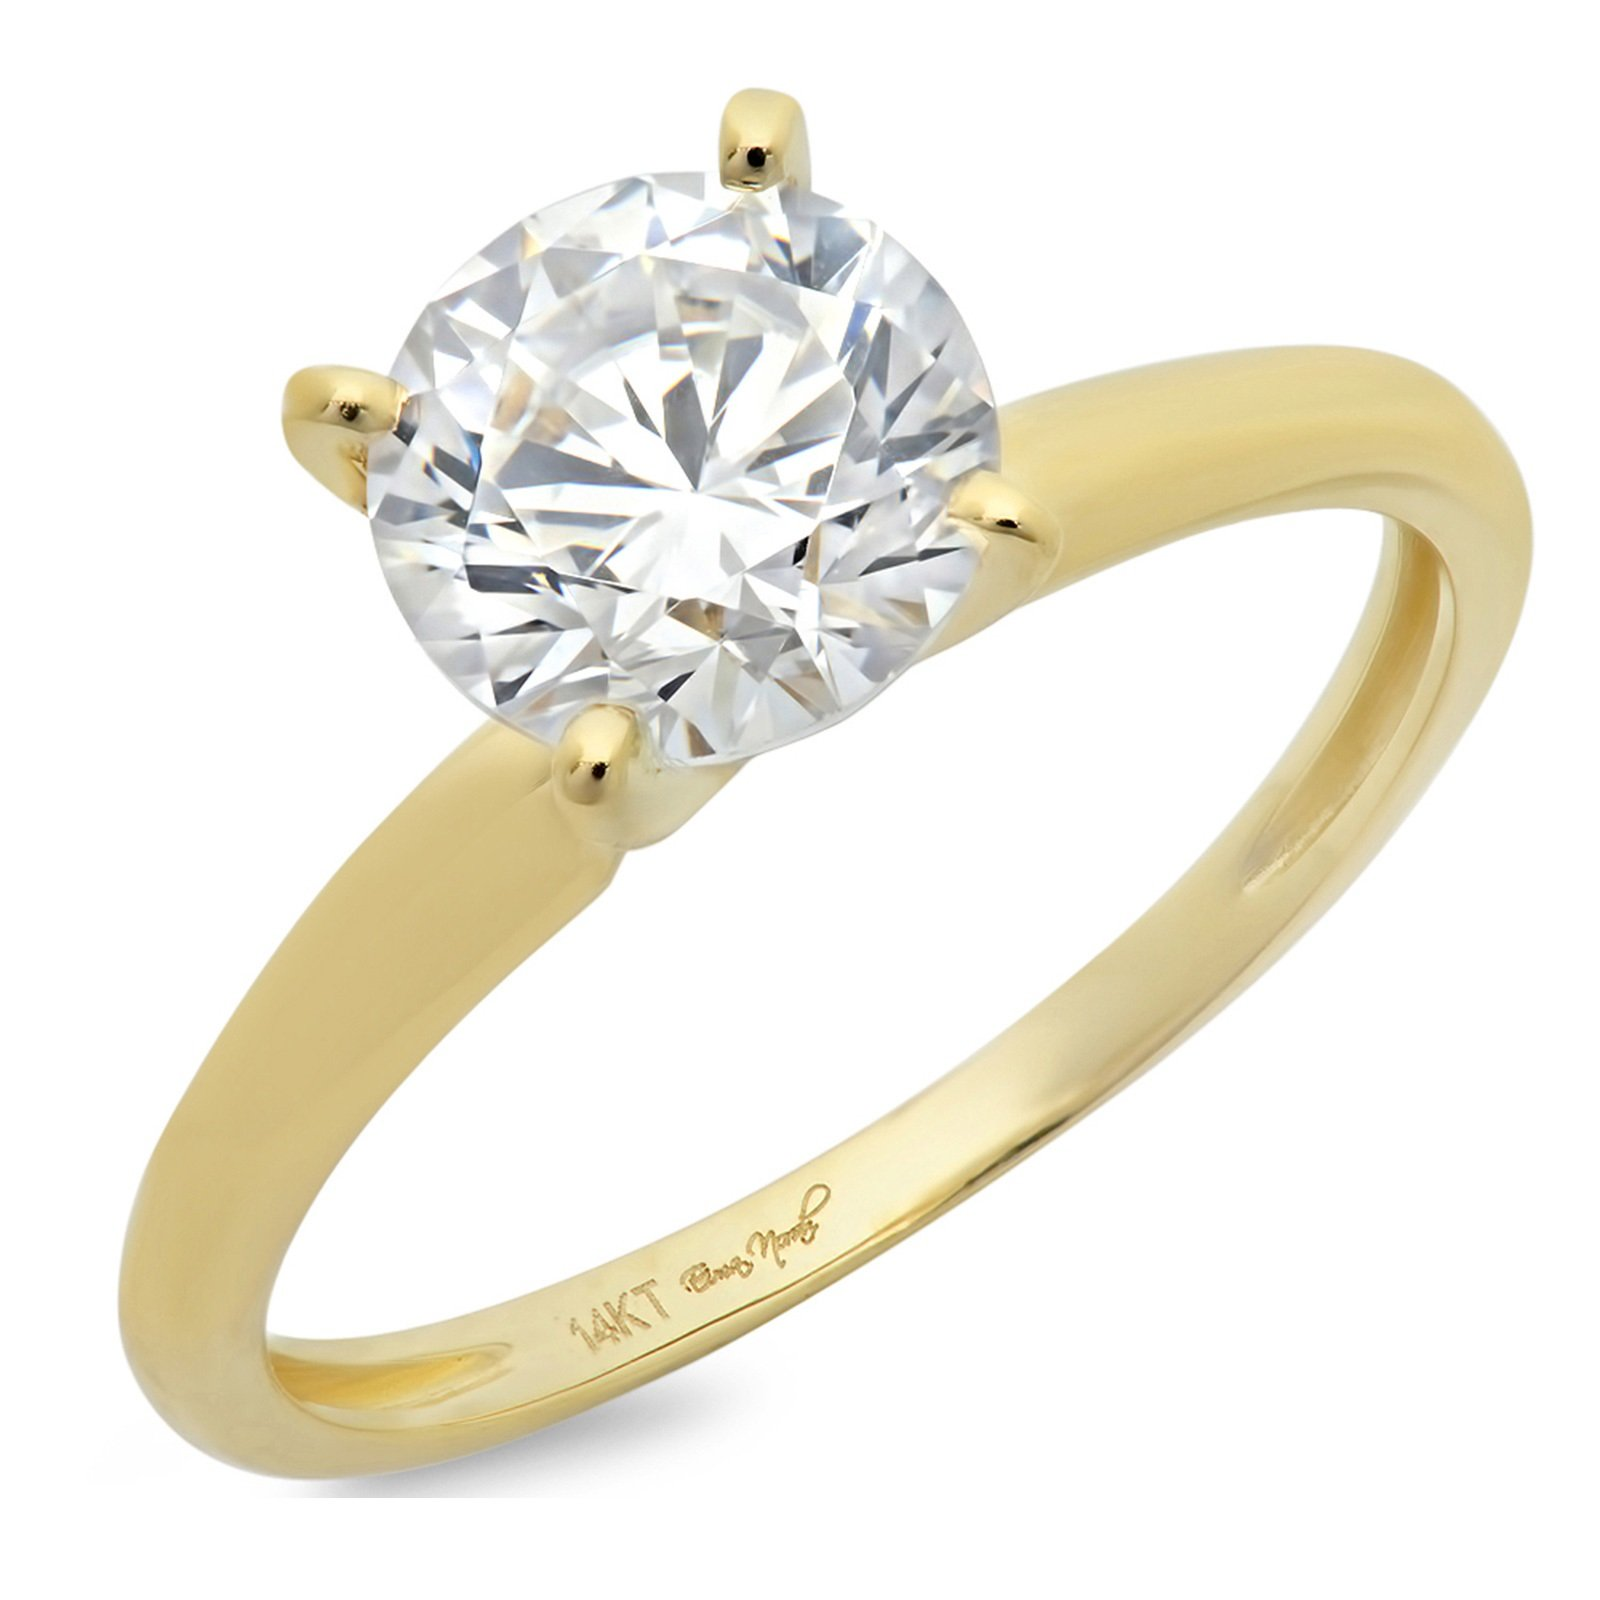 3.0 ct Brilliant Round Cut Solitaire Highest Quality Moissanite Ideal VVS1 D 4-Prong Engagement Wedding Bridal Promise Anniversary Ring in Solid Real 14k Yellow Gold for Women